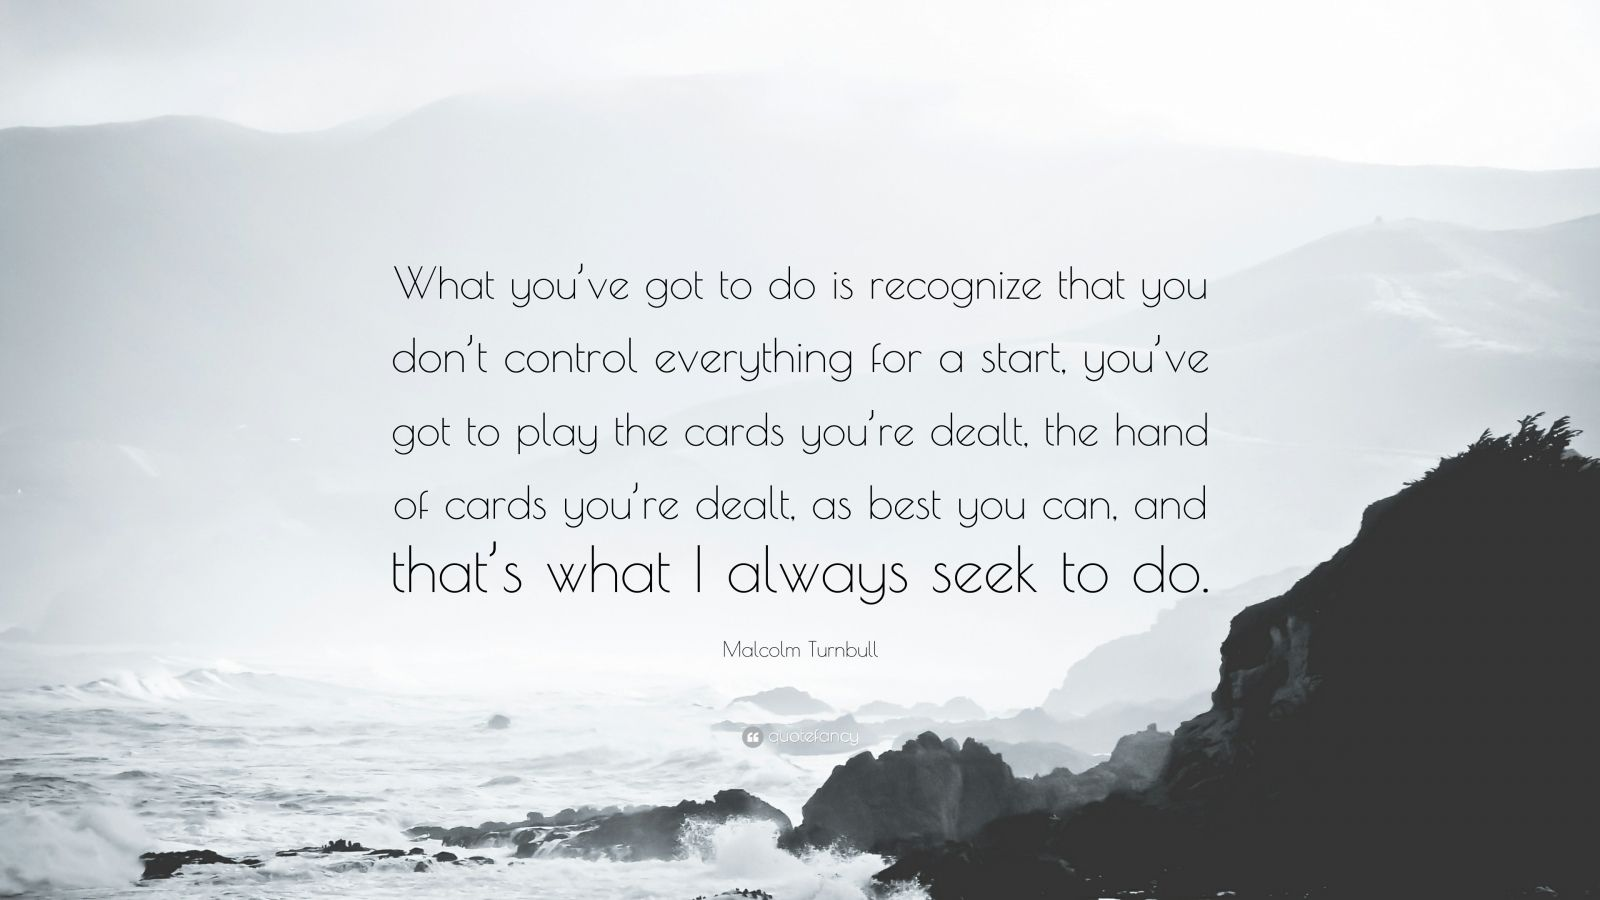 """Malcolm Turnbull Quote: """"What you've got to do is recognize that you don't control everything for a start, you've got to play the cards you're dealt, the hand of cards you're dealt, as best you can, and that's what I always seek to do."""""""